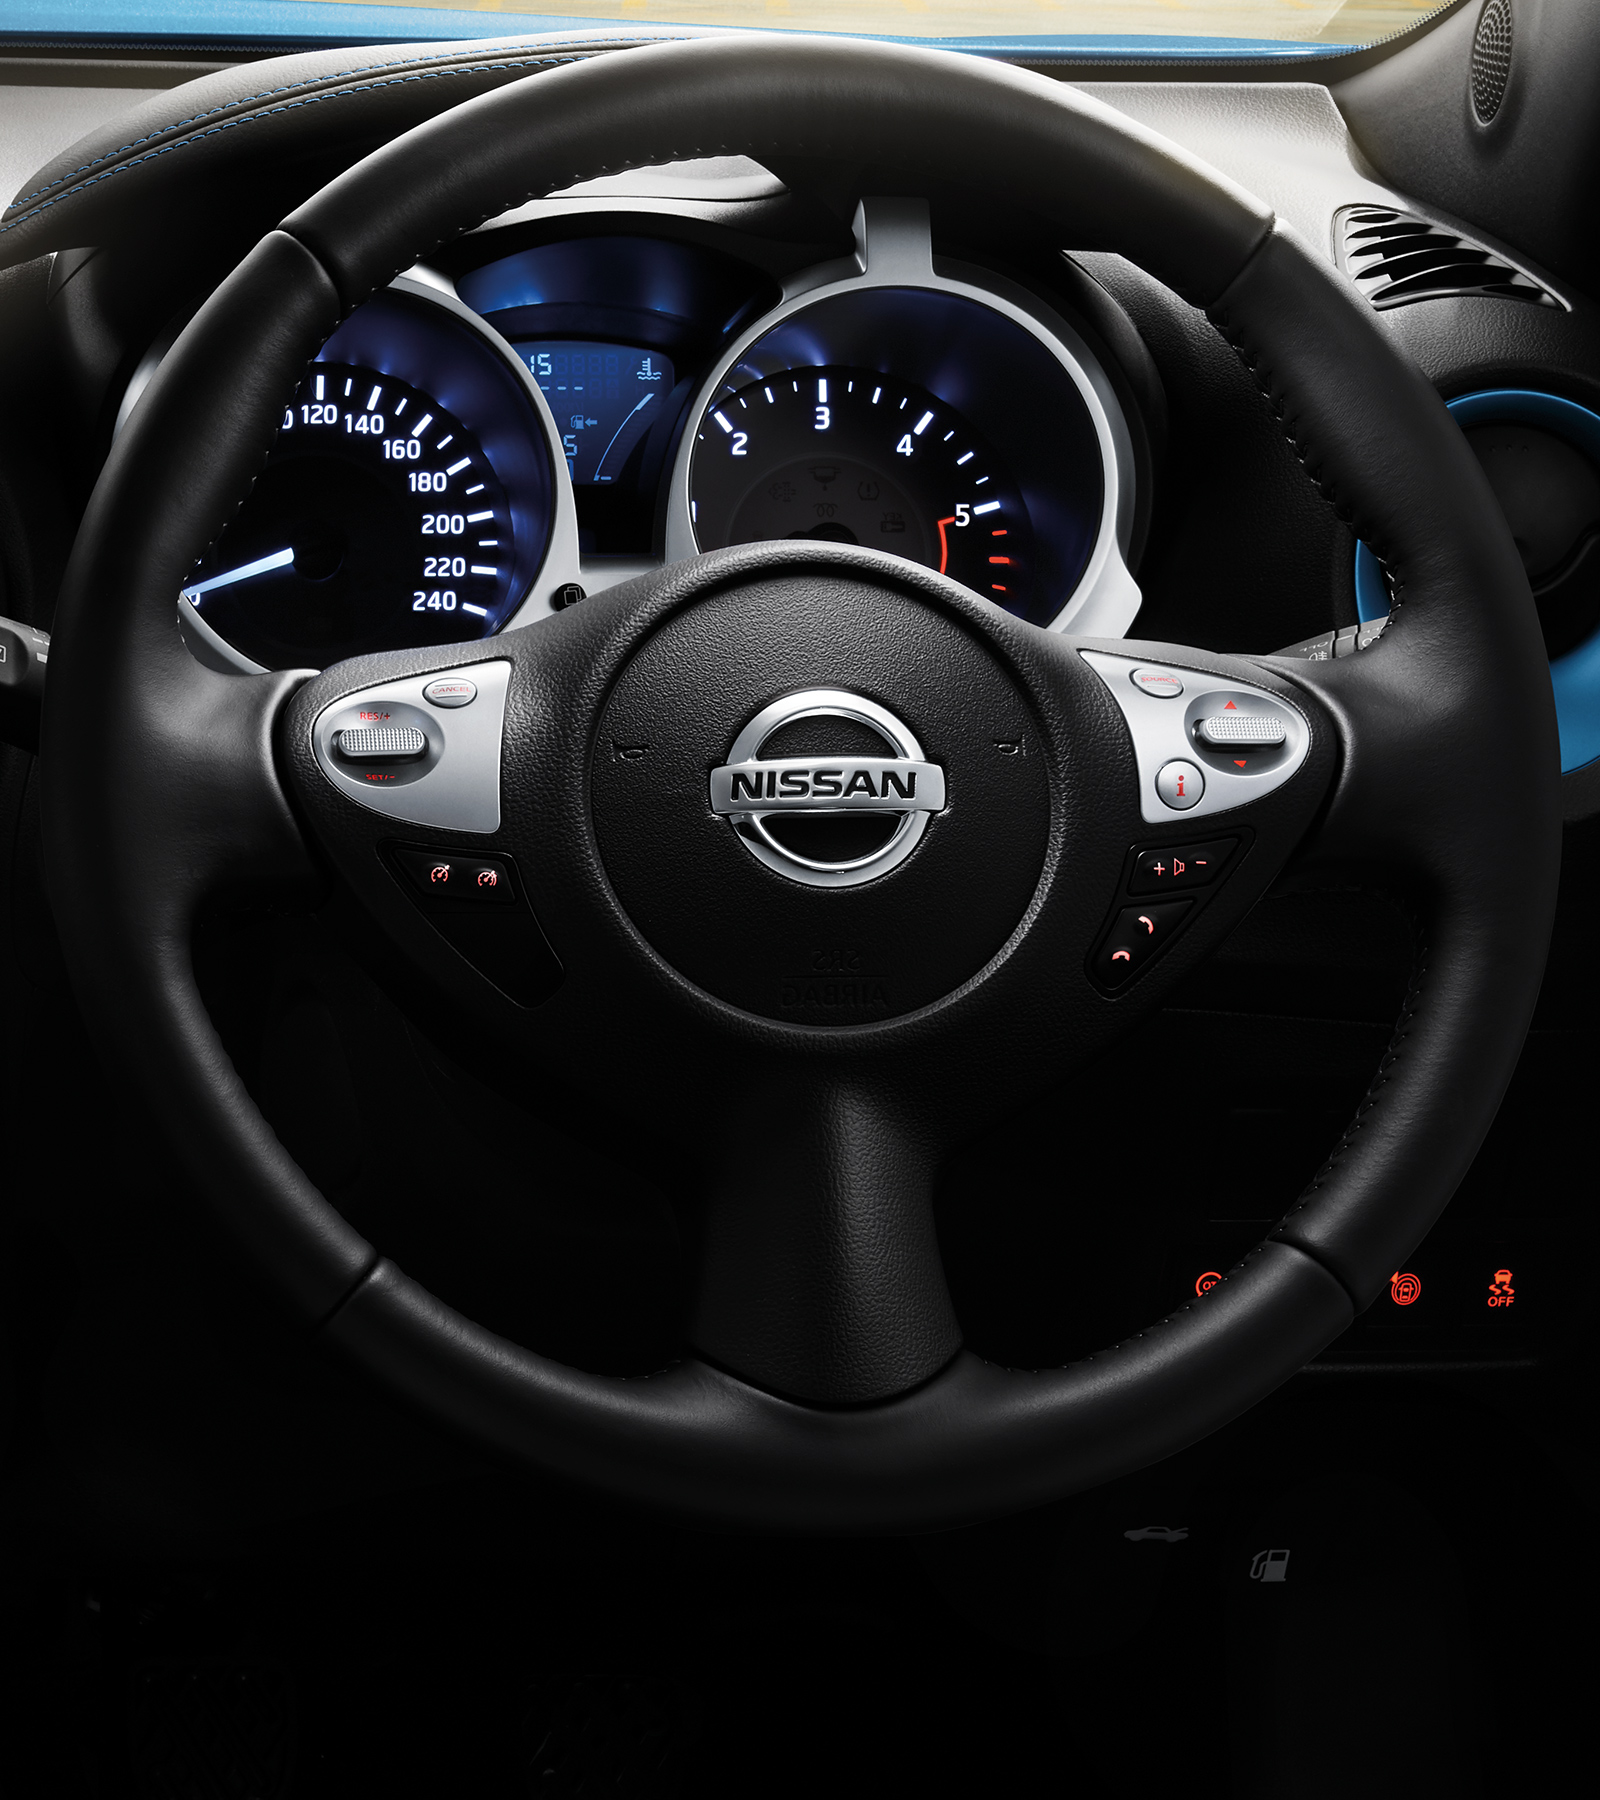 2018 Nissan JUKE steering wheel detail shot